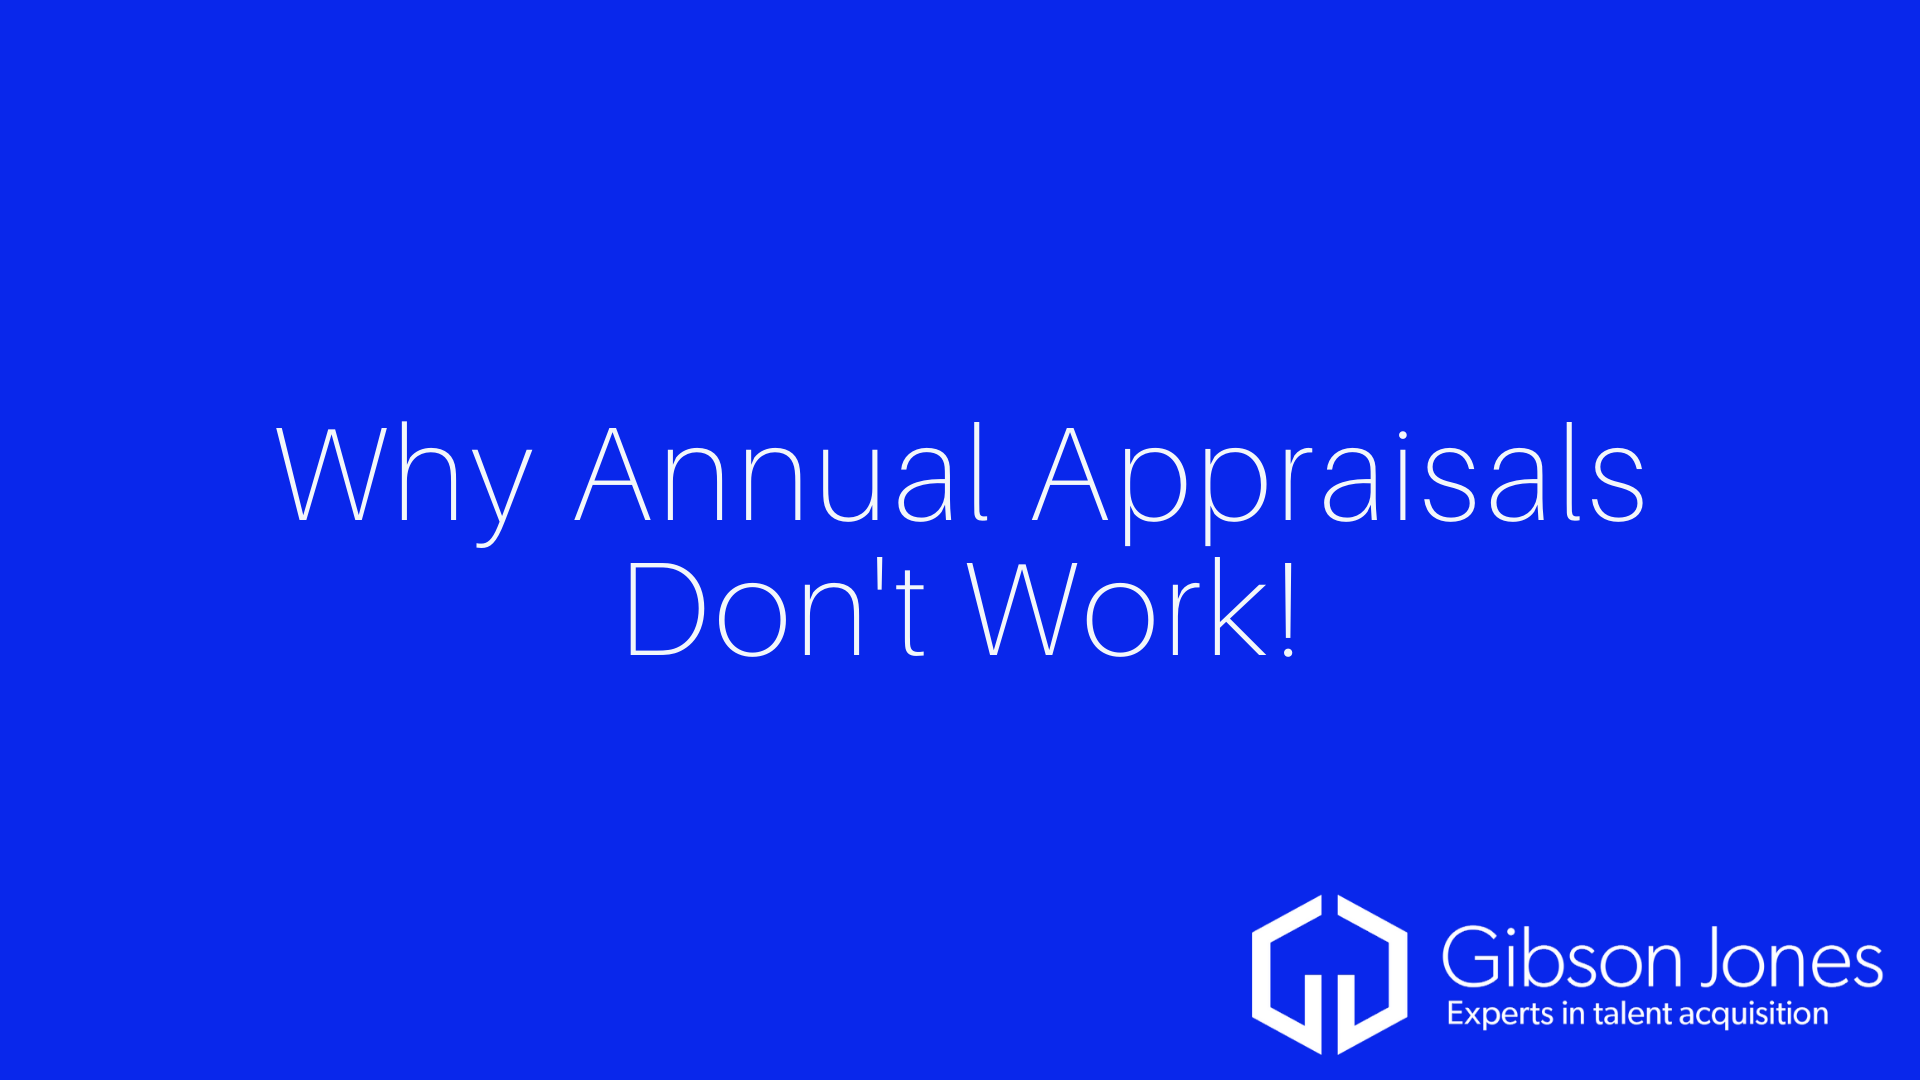 Why Annual Appraisals Don't Work!